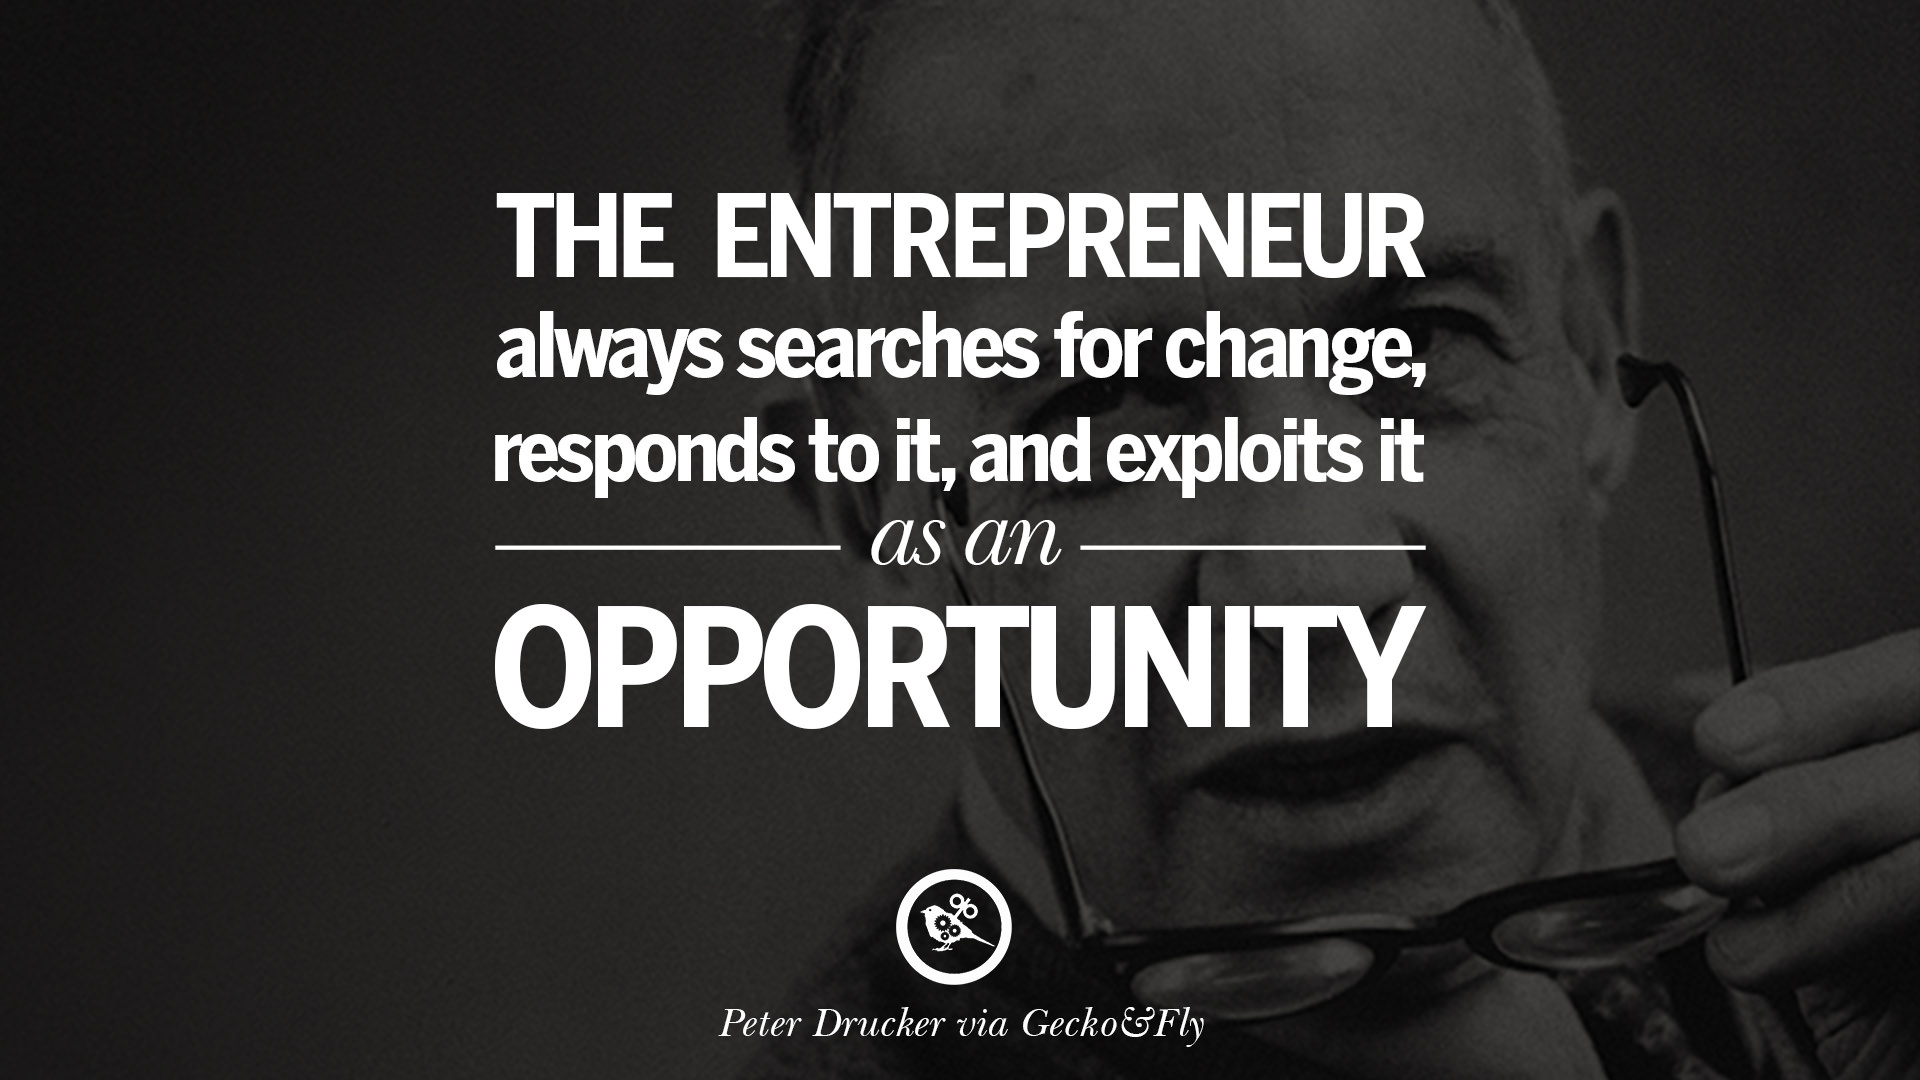 Entrepreneurship Quotes 12 Inspirational Quotes For Entrepreneur On Starting Up A Business